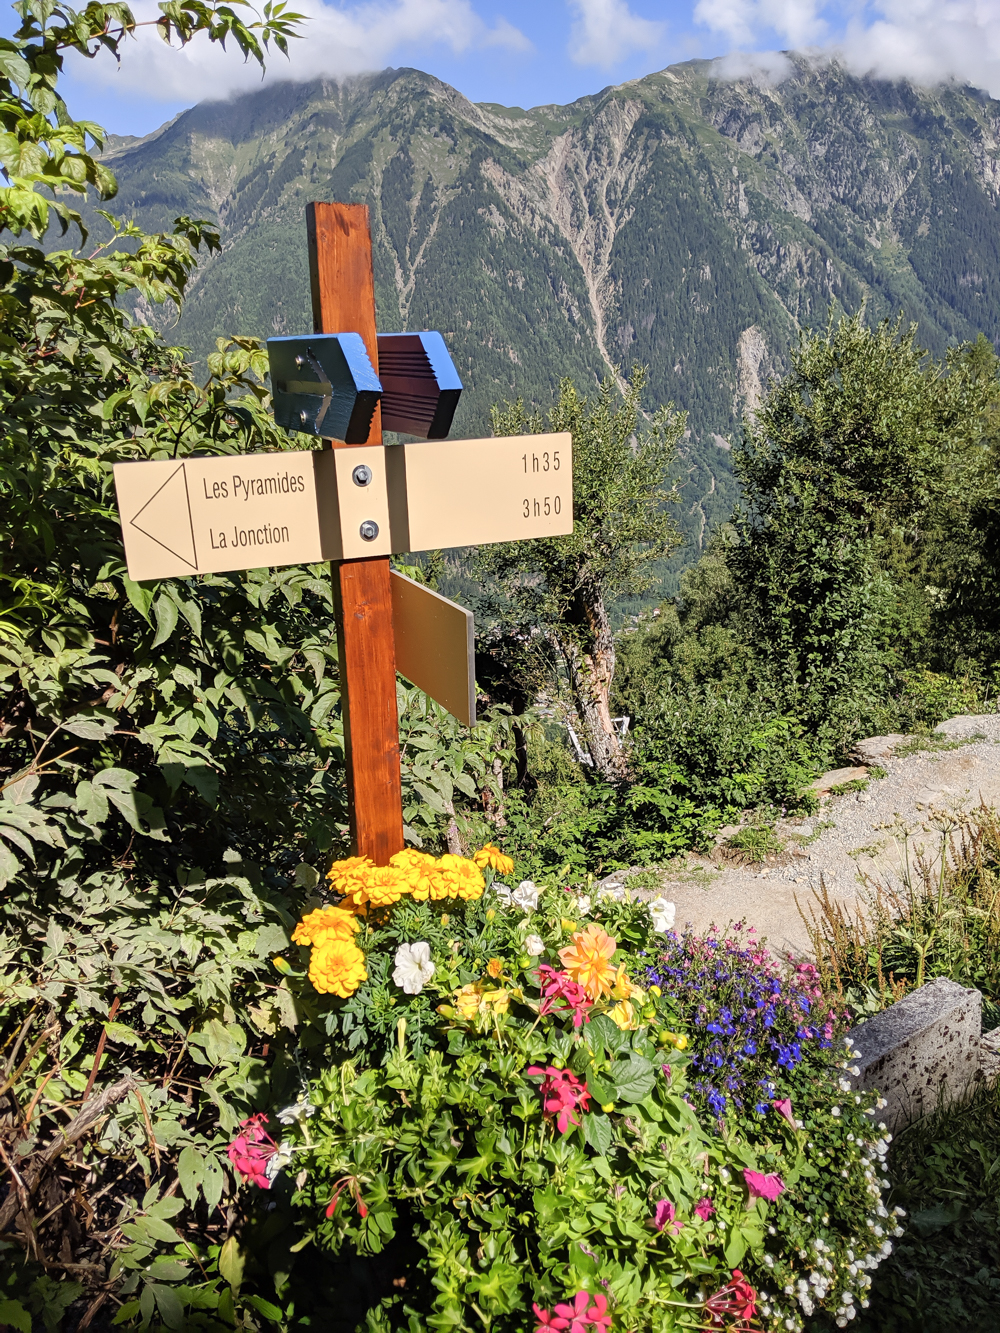 Best hikes in Chamonix: Plan de l'Aiguille to Mer de Glace and Montenvers on the Grand Balcon Nord / best day hikes in Chamonix / Mer de glace glacier, hiking in chamonix / trail signs and flowers